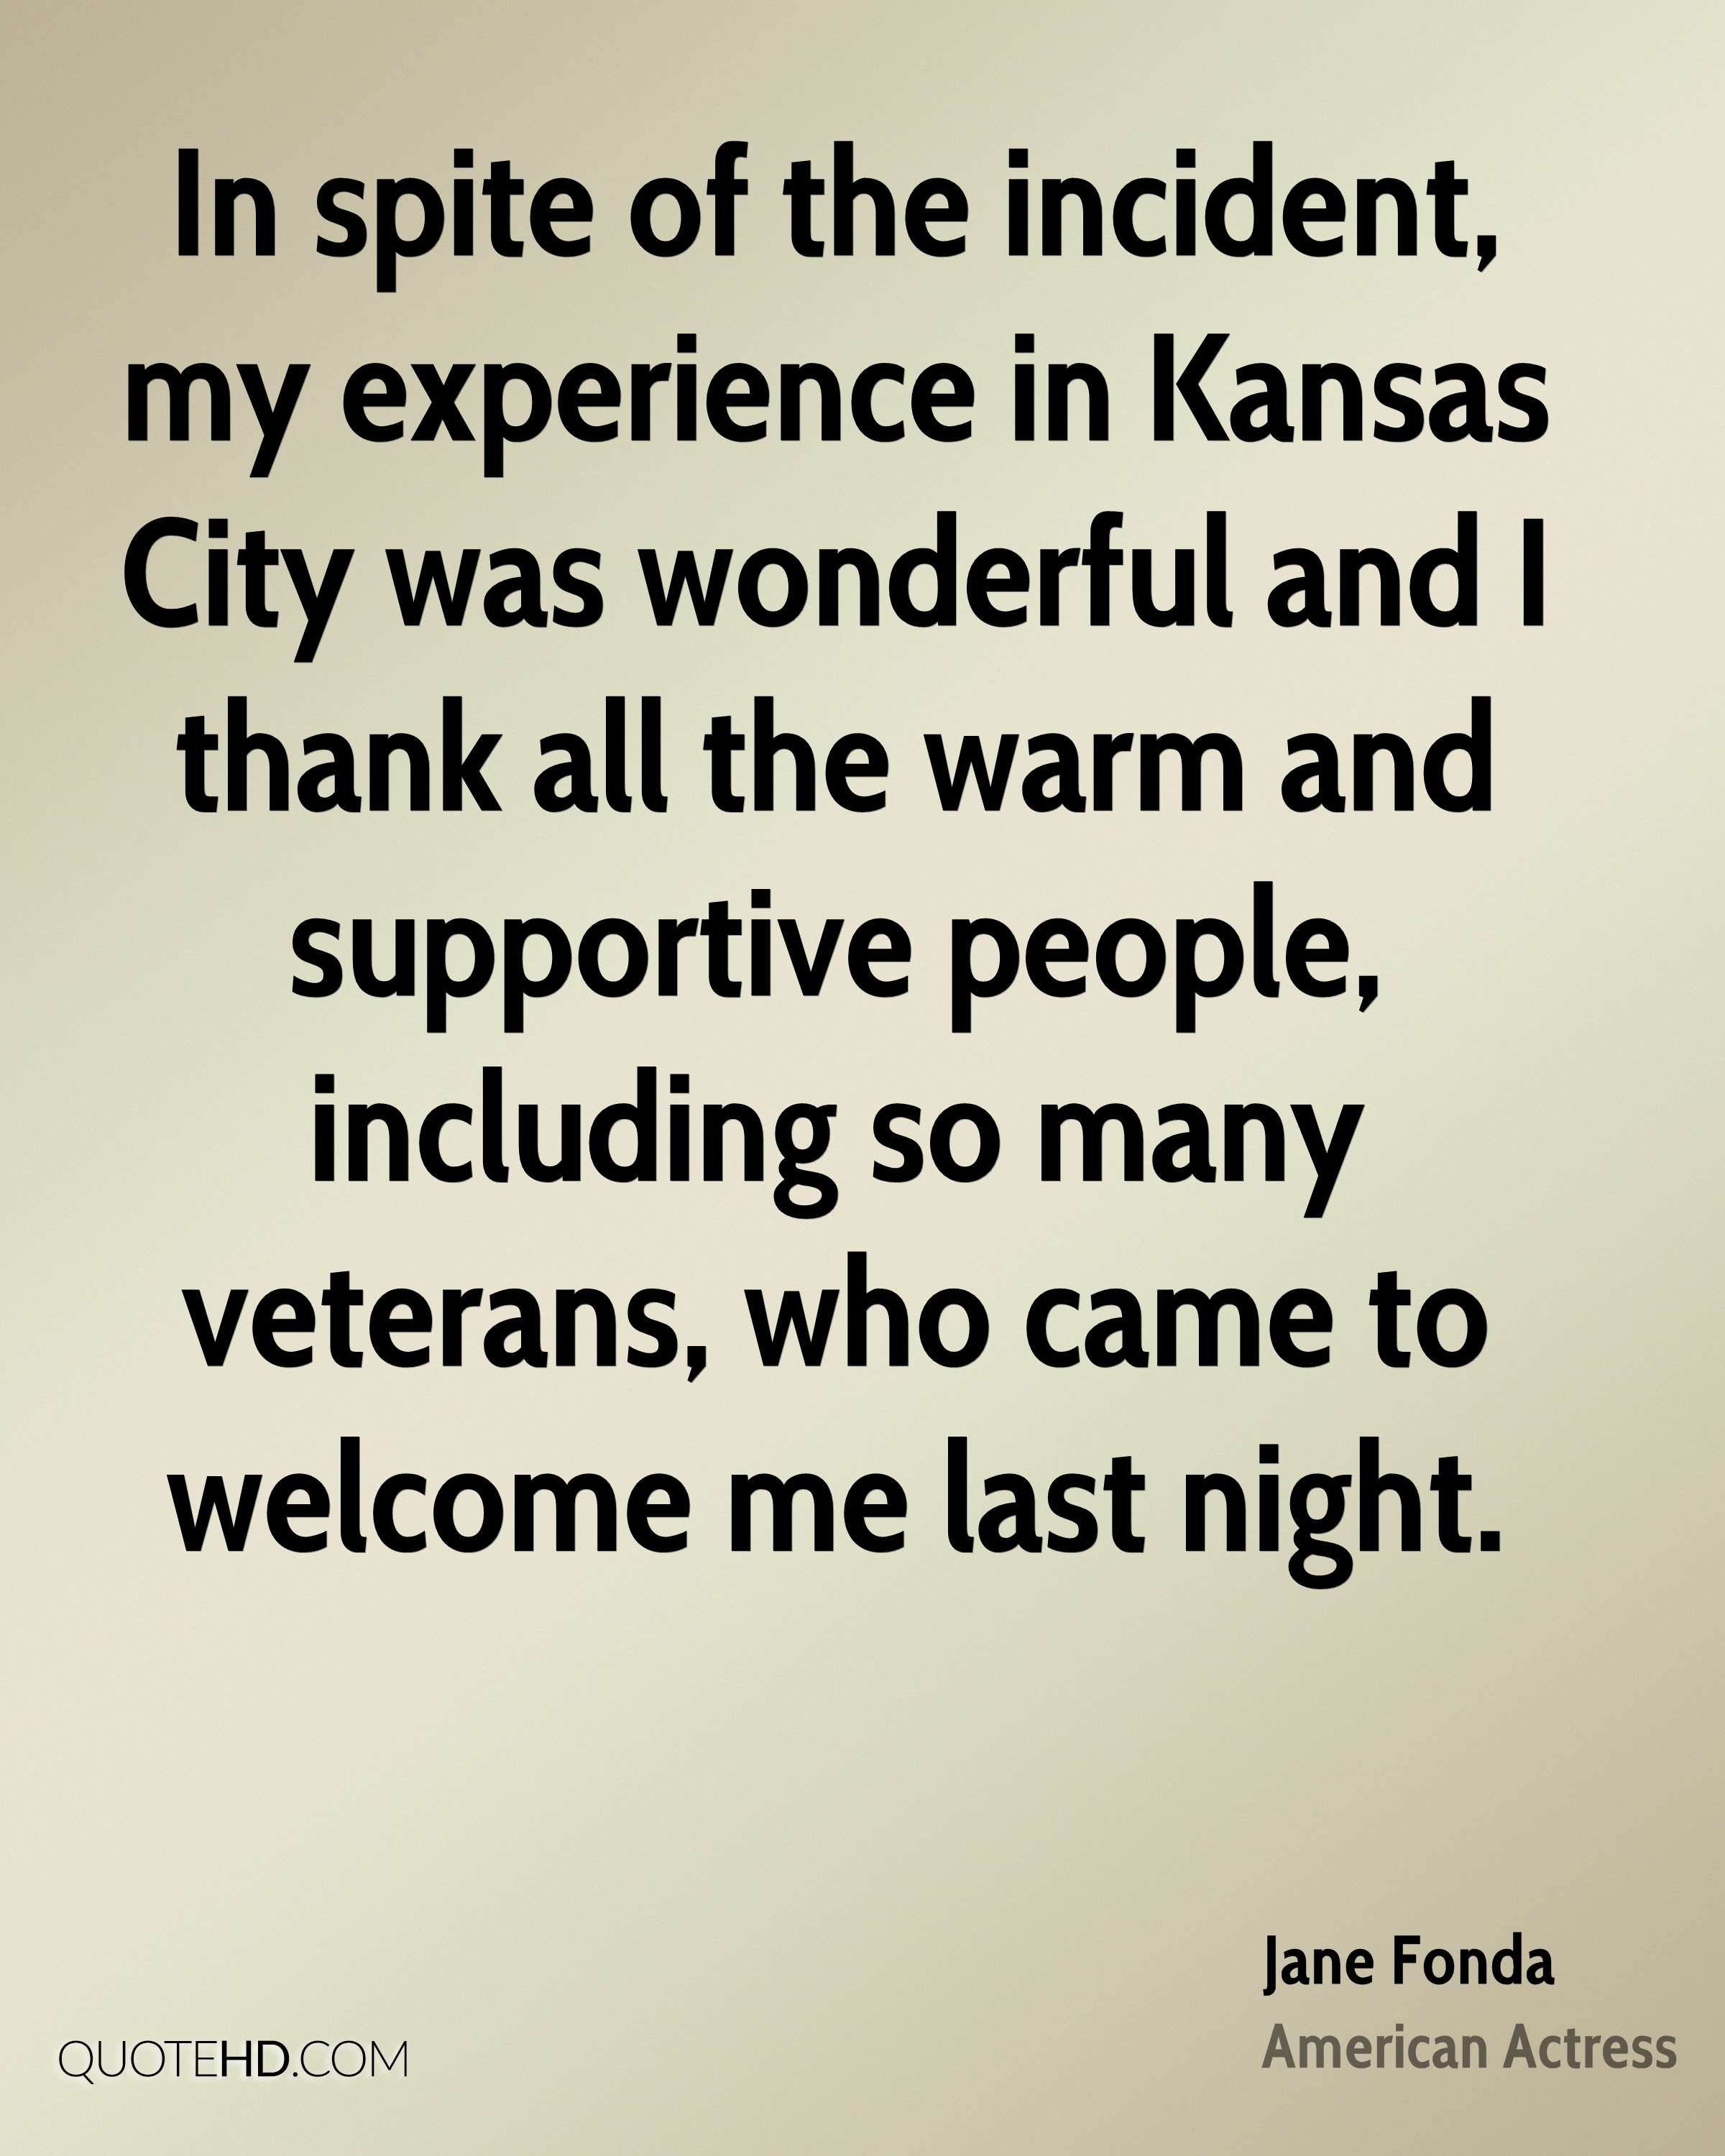 In spite of the incident, my experience in Kansas City was wonderful and I thank all the warm and supportive people, including so many veterans, who came to welcome me last night.